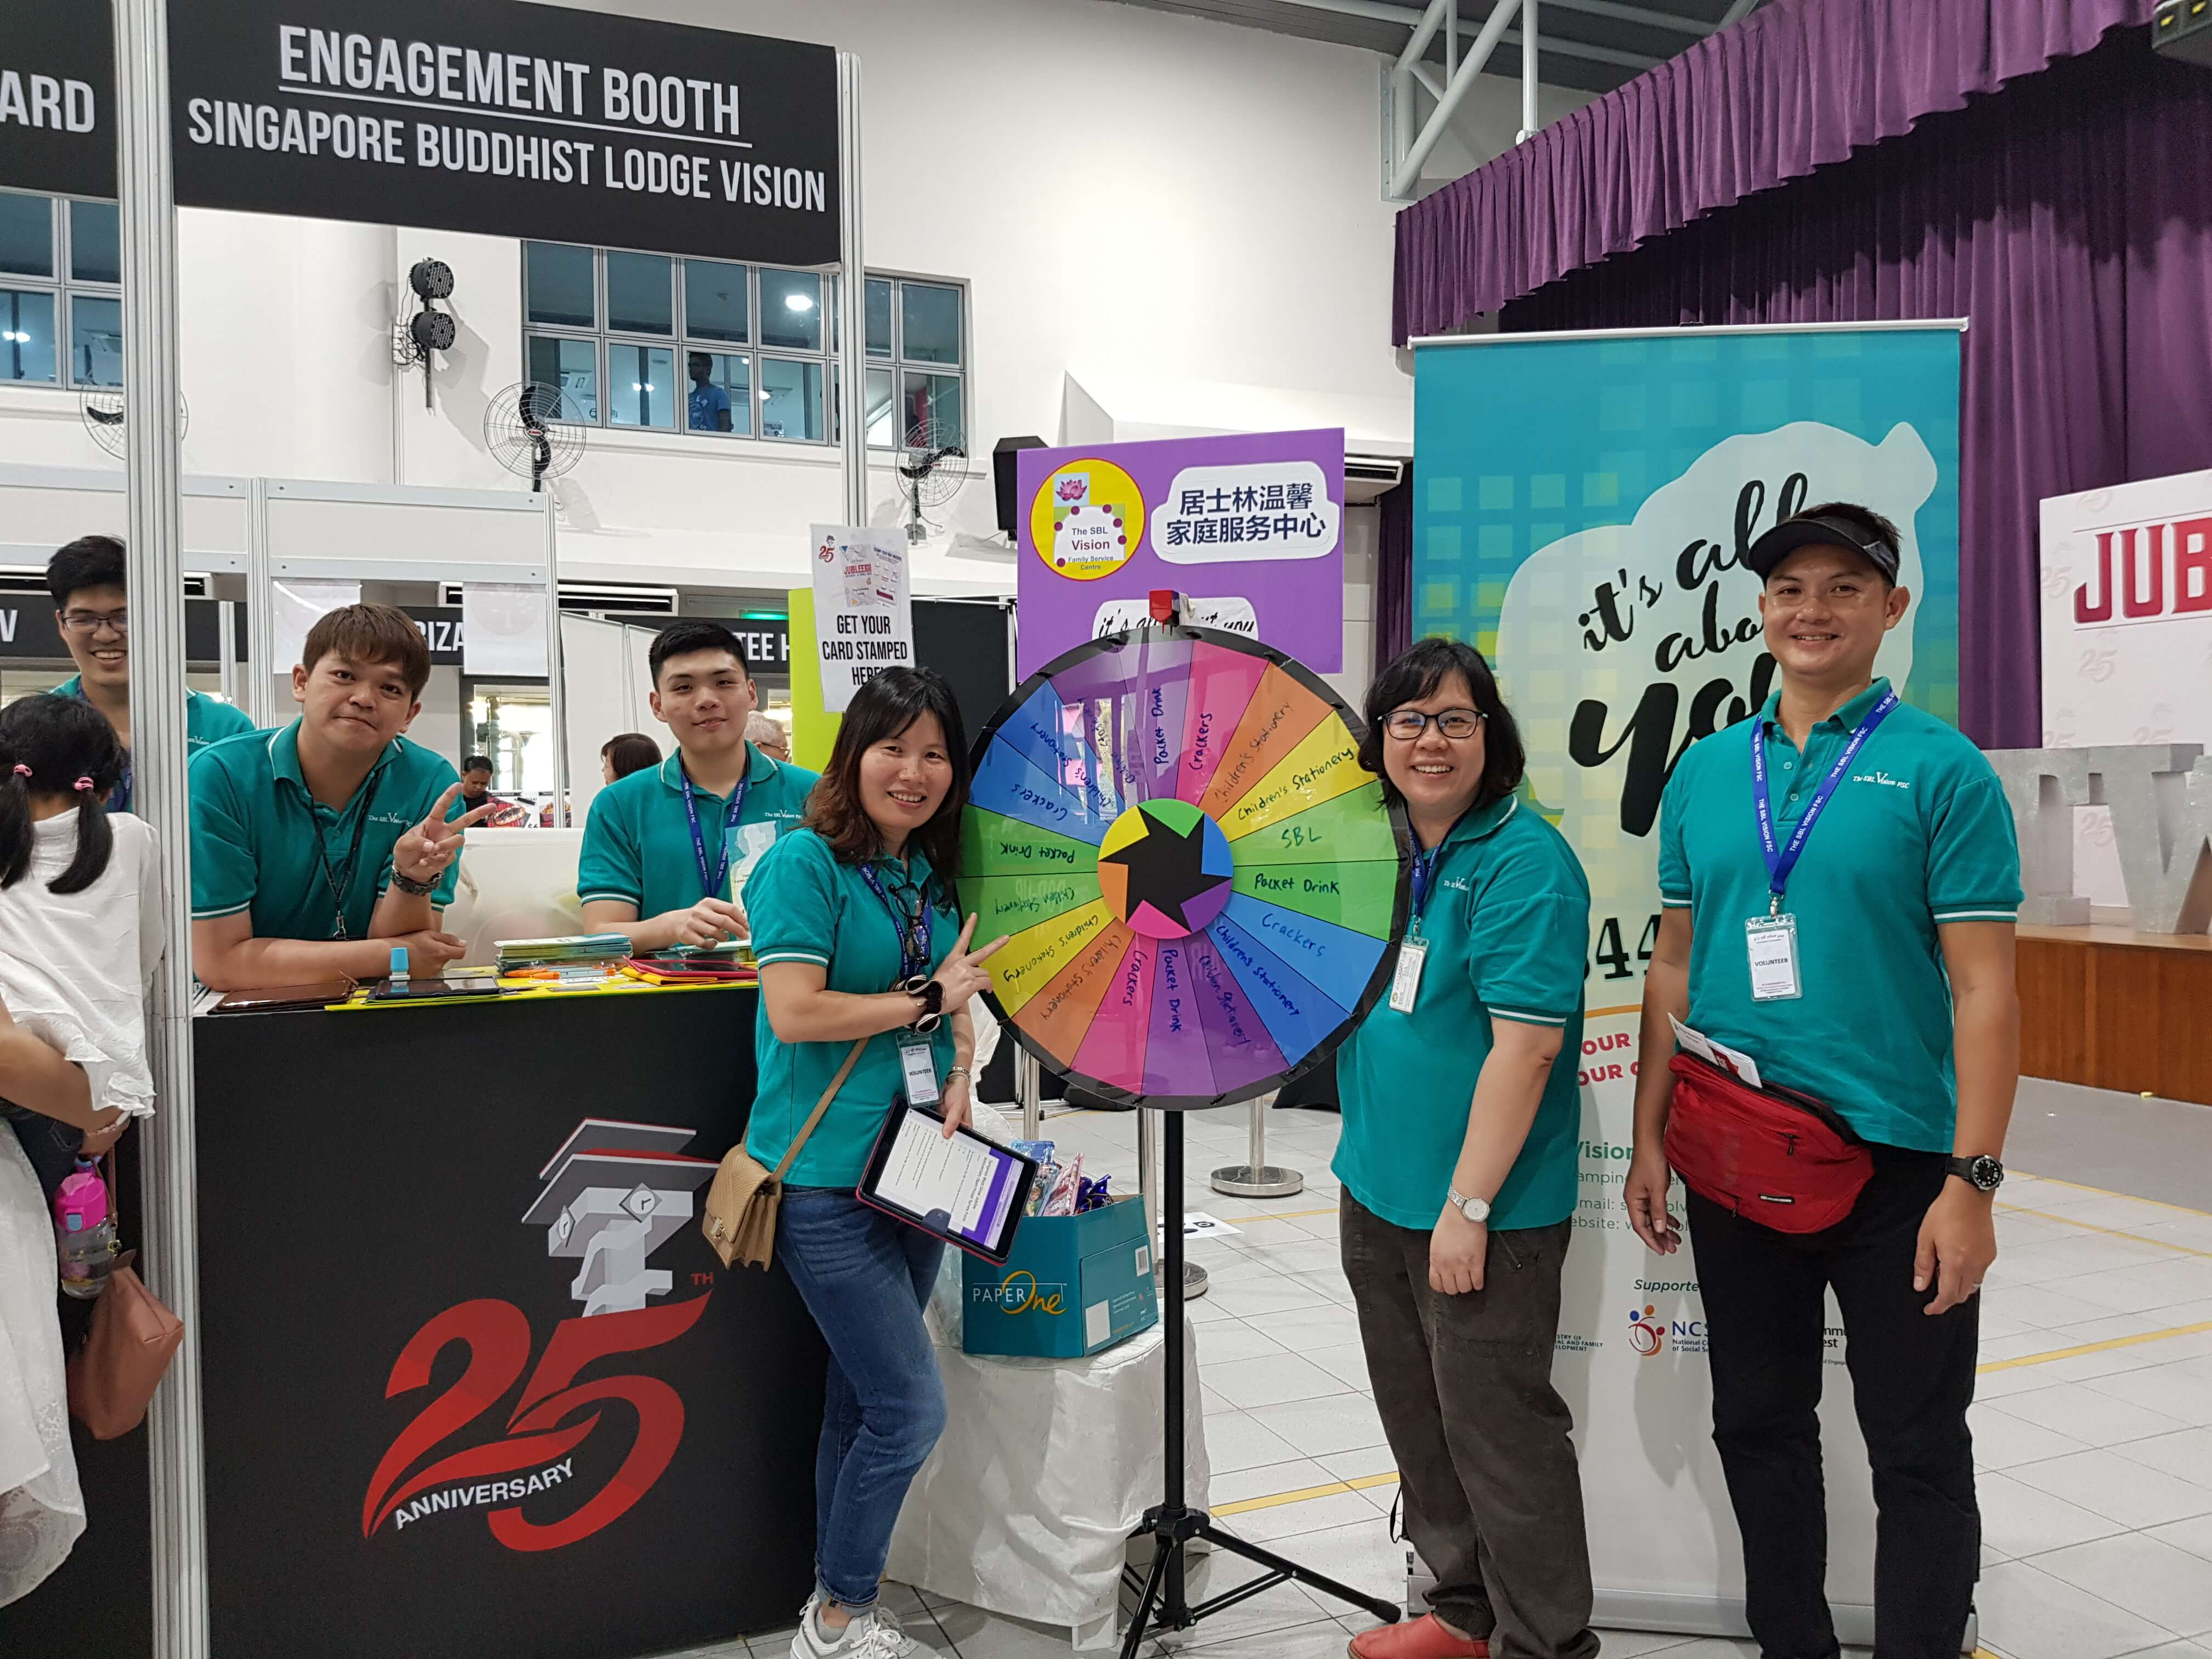 Past Event: Silver Jubilee Open House at Tampines West CC